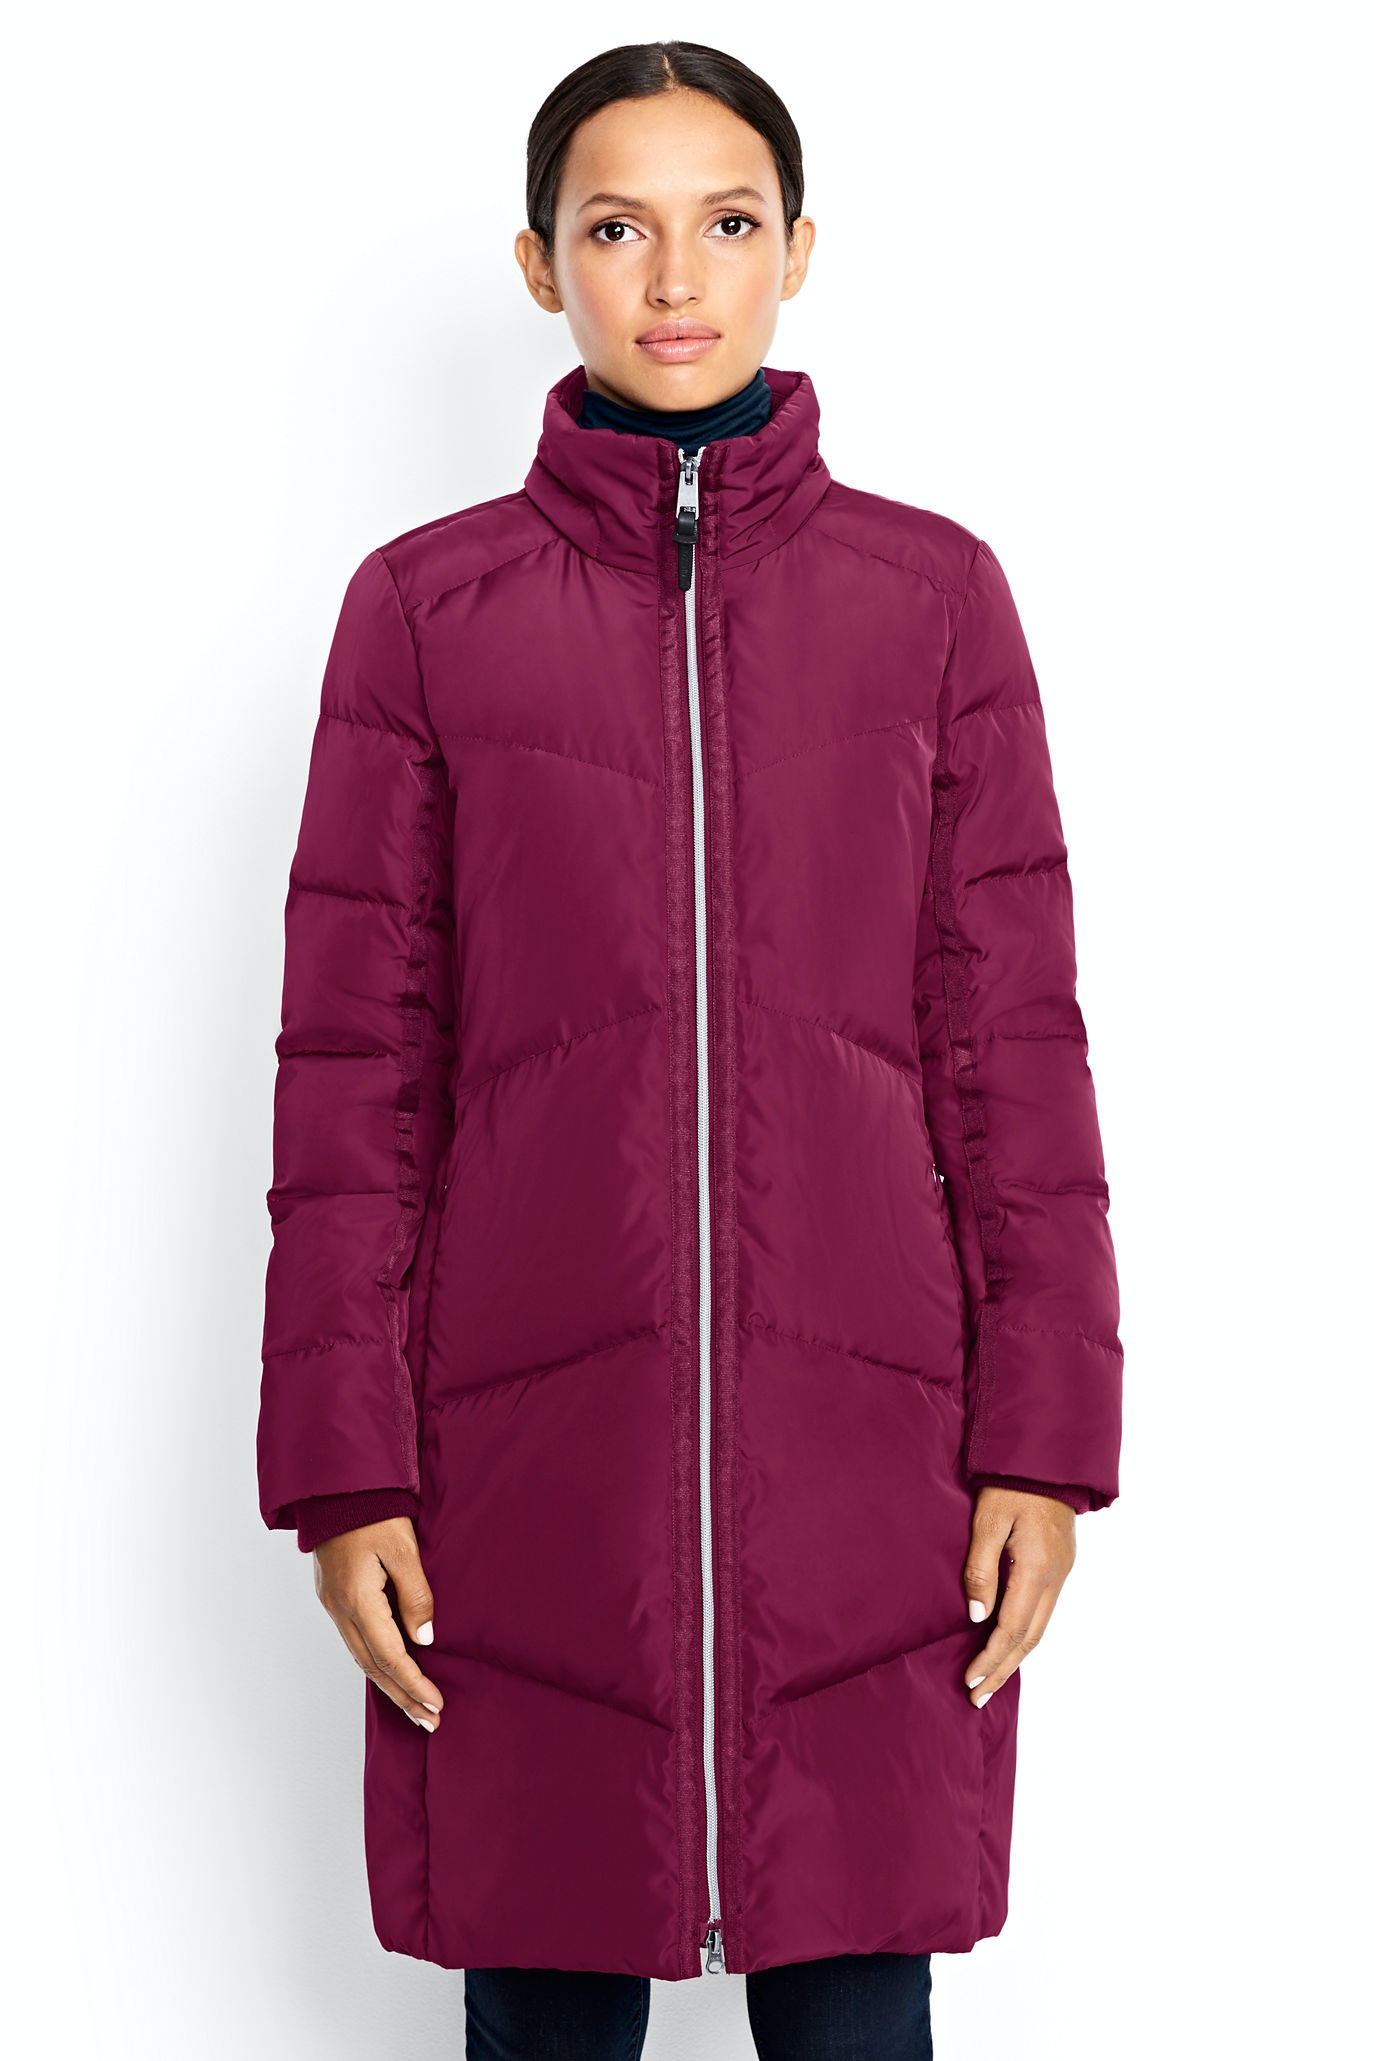 59aa5d3ff1101 15 Warm Winter Coats Under  100 That Will Actually Keep You Toasty